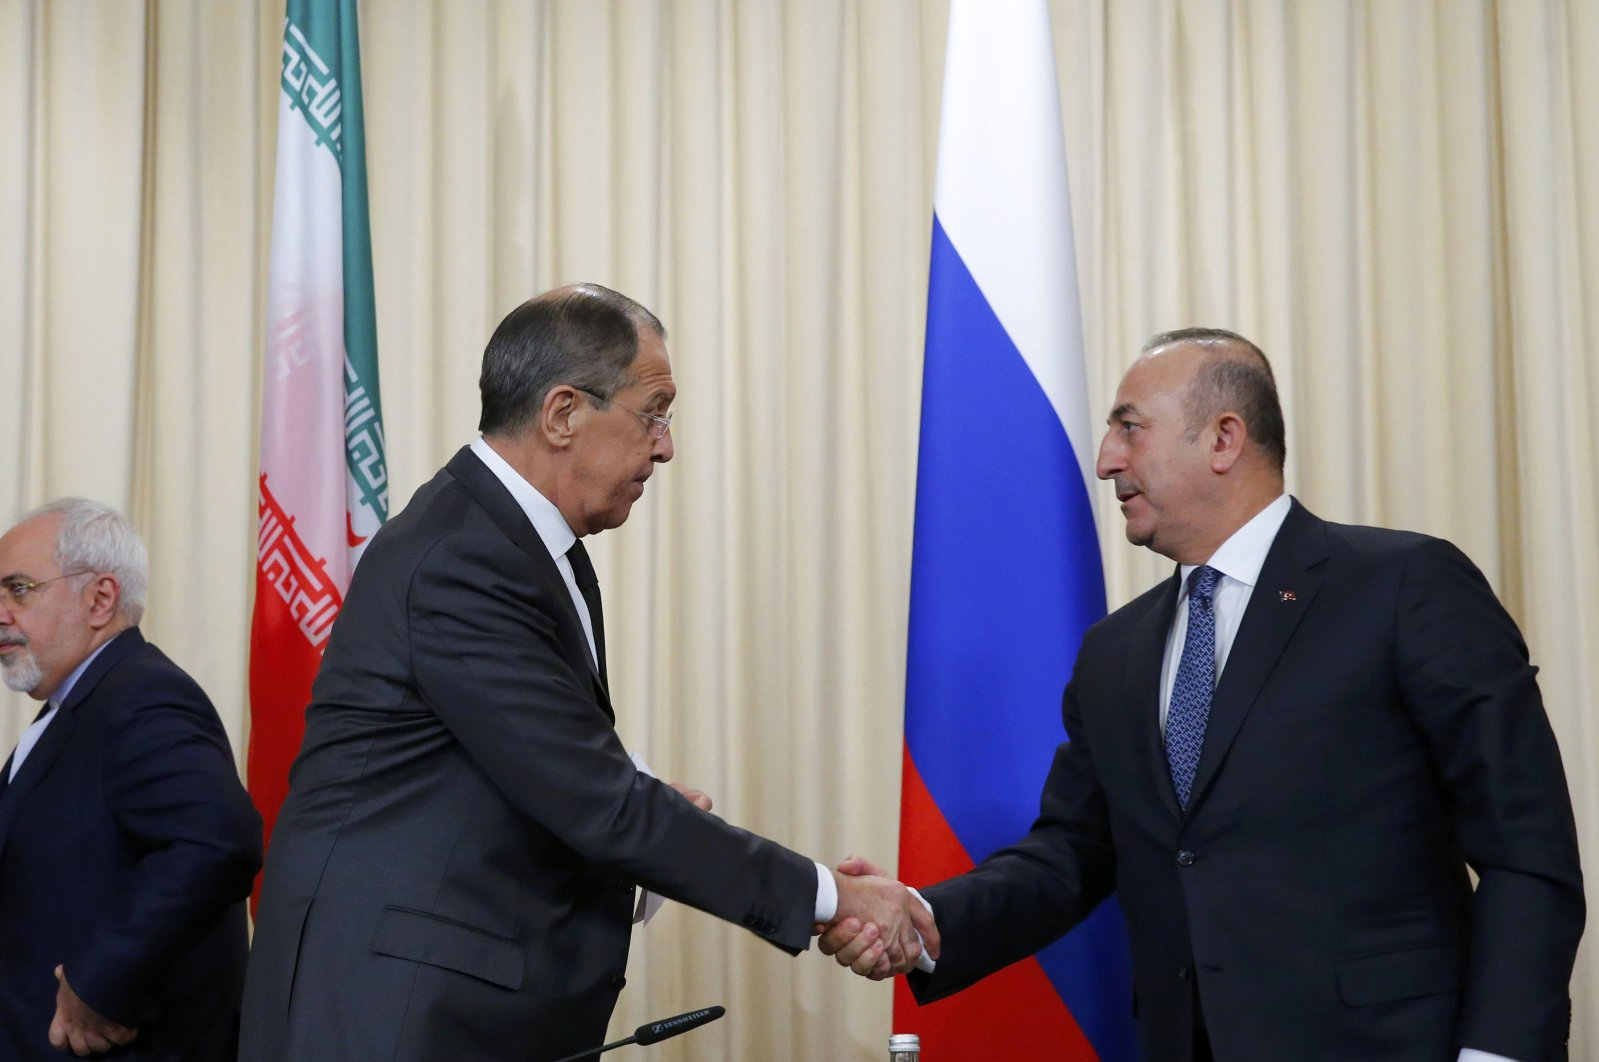 Russian Foreign Ministers Sergei Lavrov (C) and Turkish Foreign Minister Mevlüt Çavuşoğlu (R) shake hands after a news conference in Moscow, Russia, Dec. 20, 2016. (REUTERS Photo)